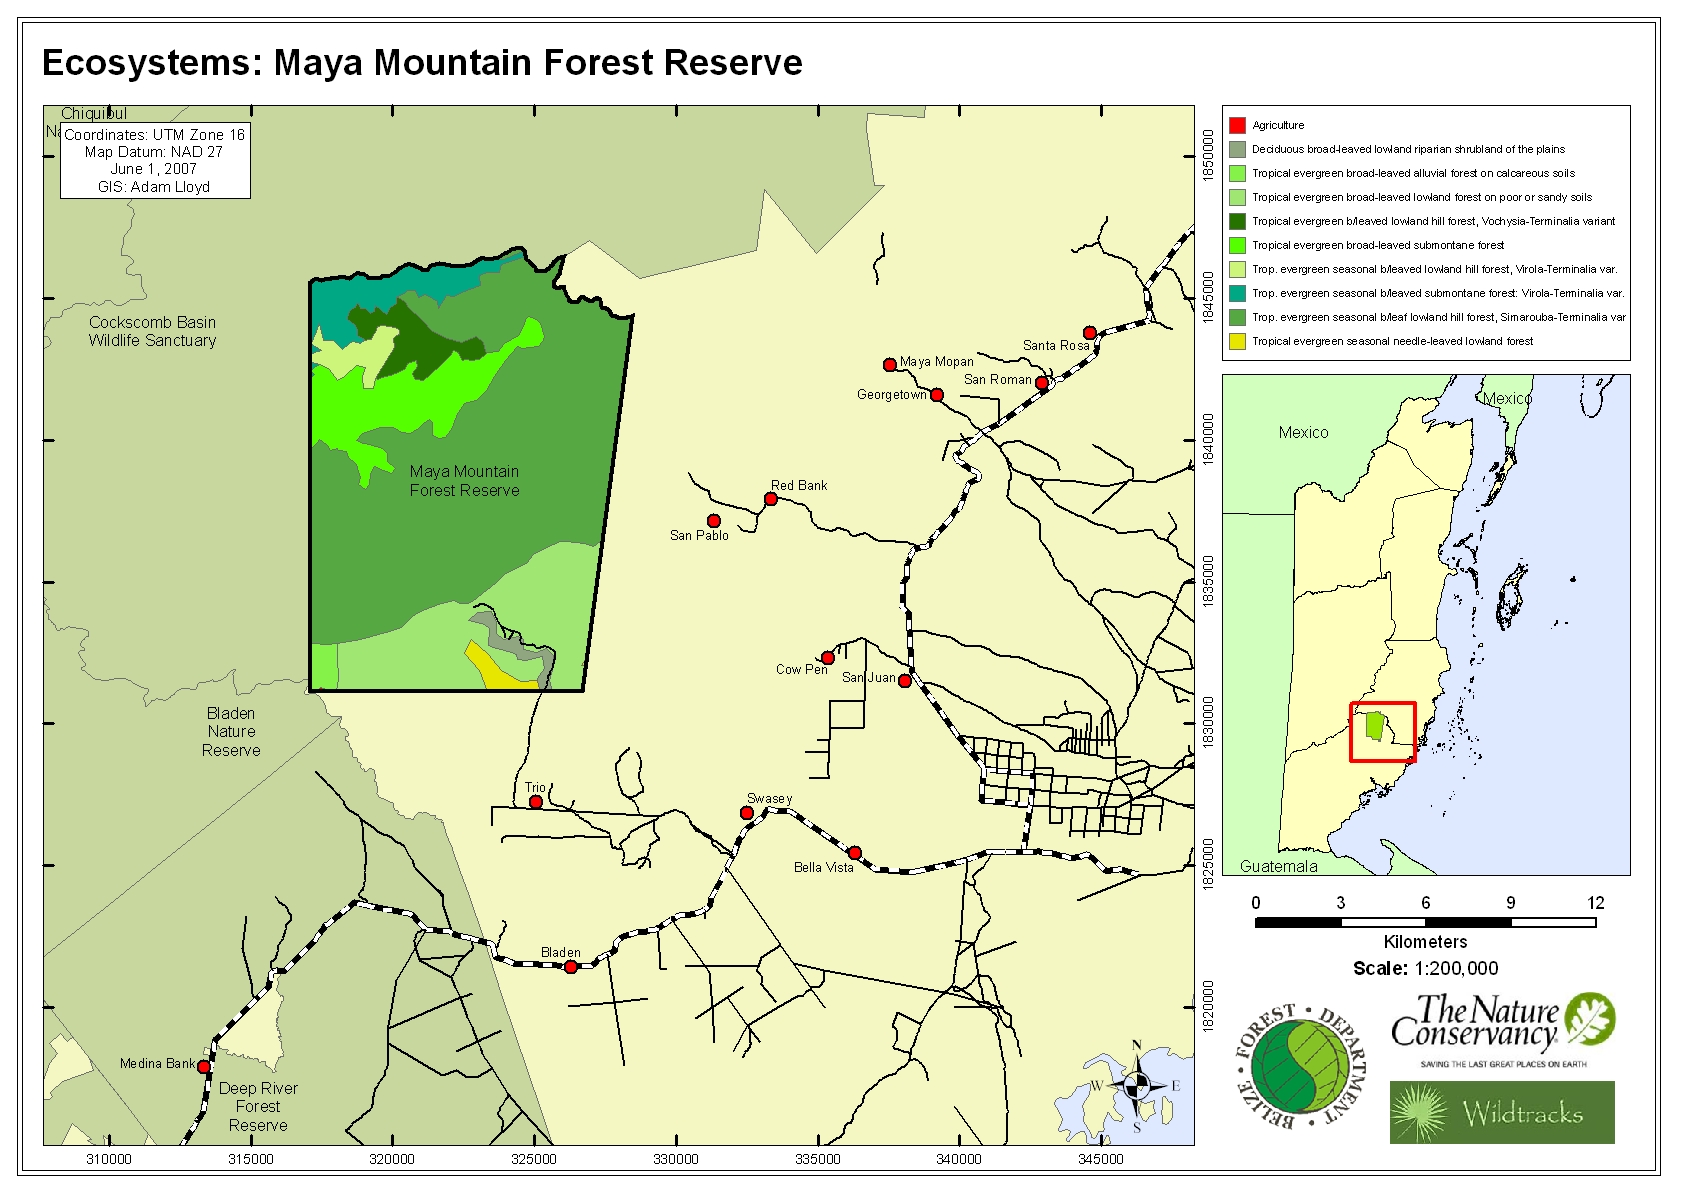 Ecosystems: Maya Mountain Forest Reserve